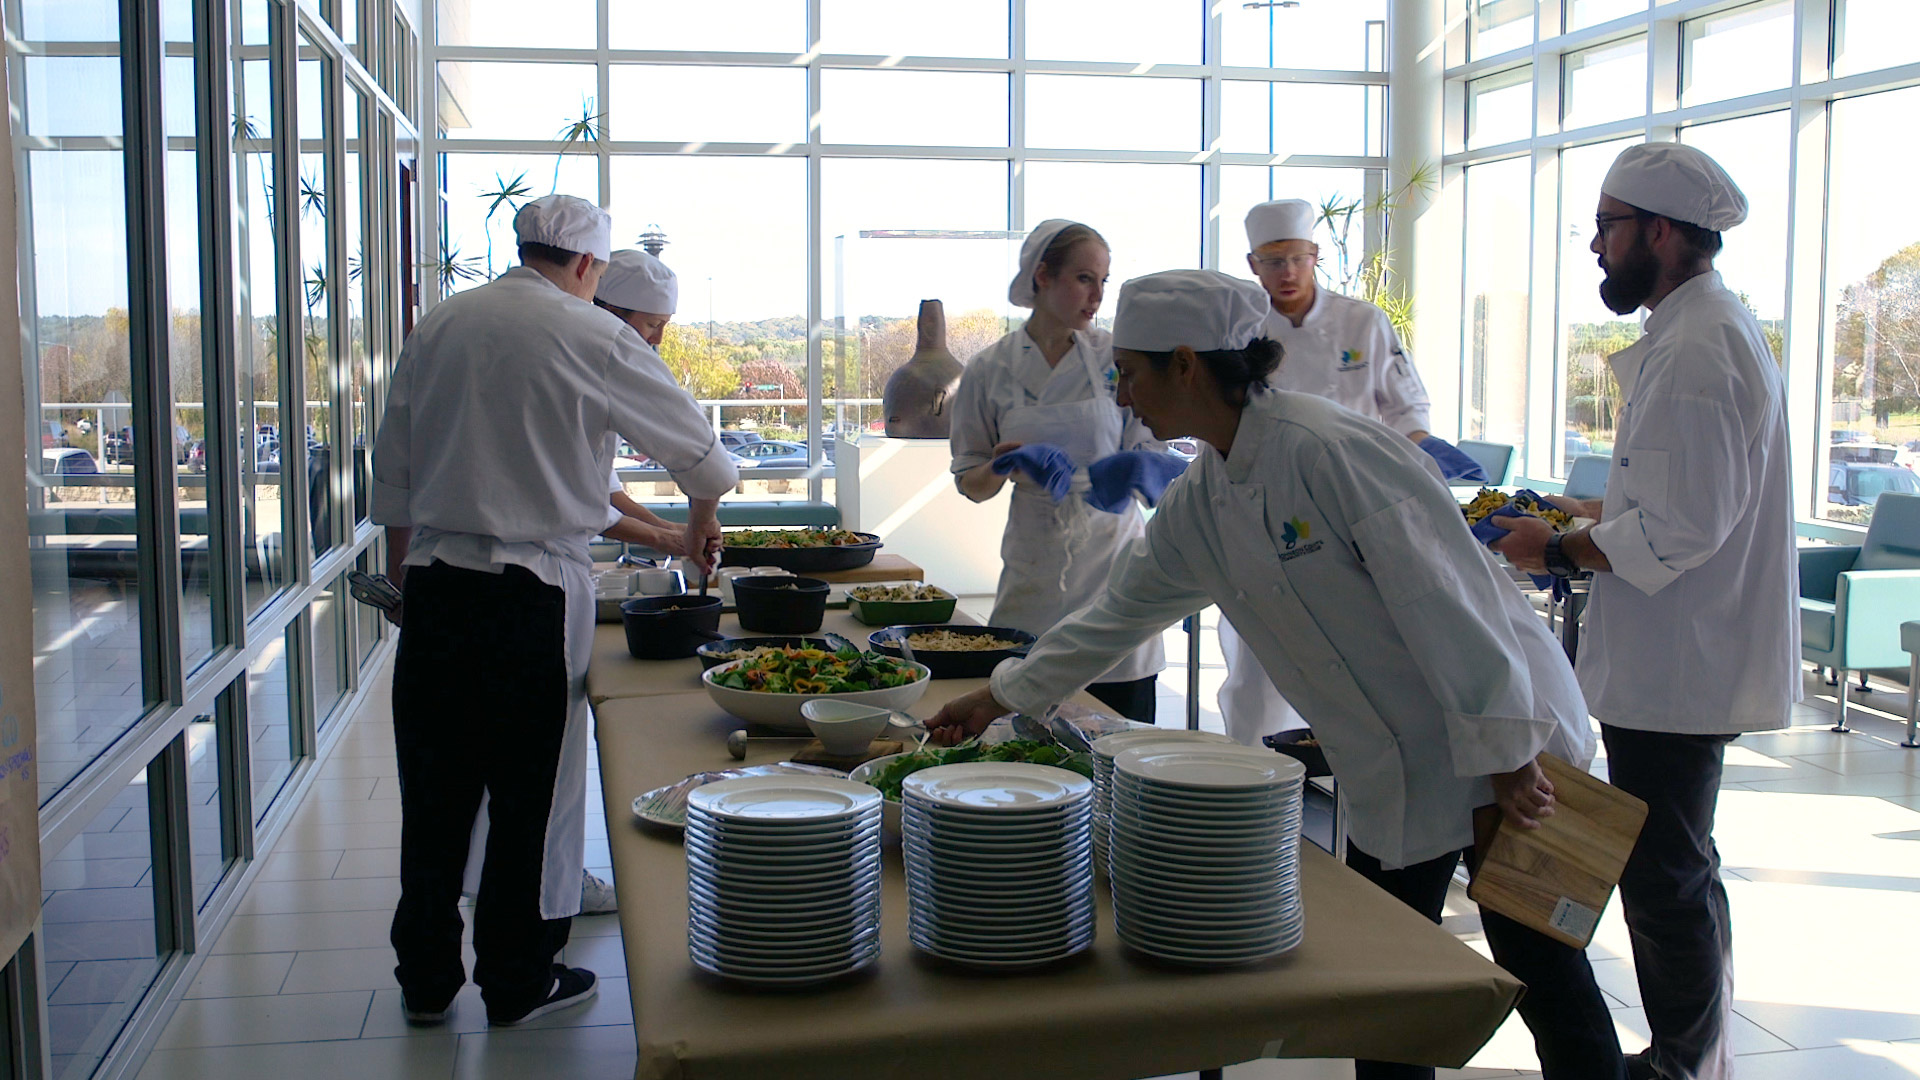 Culinary students setting tables